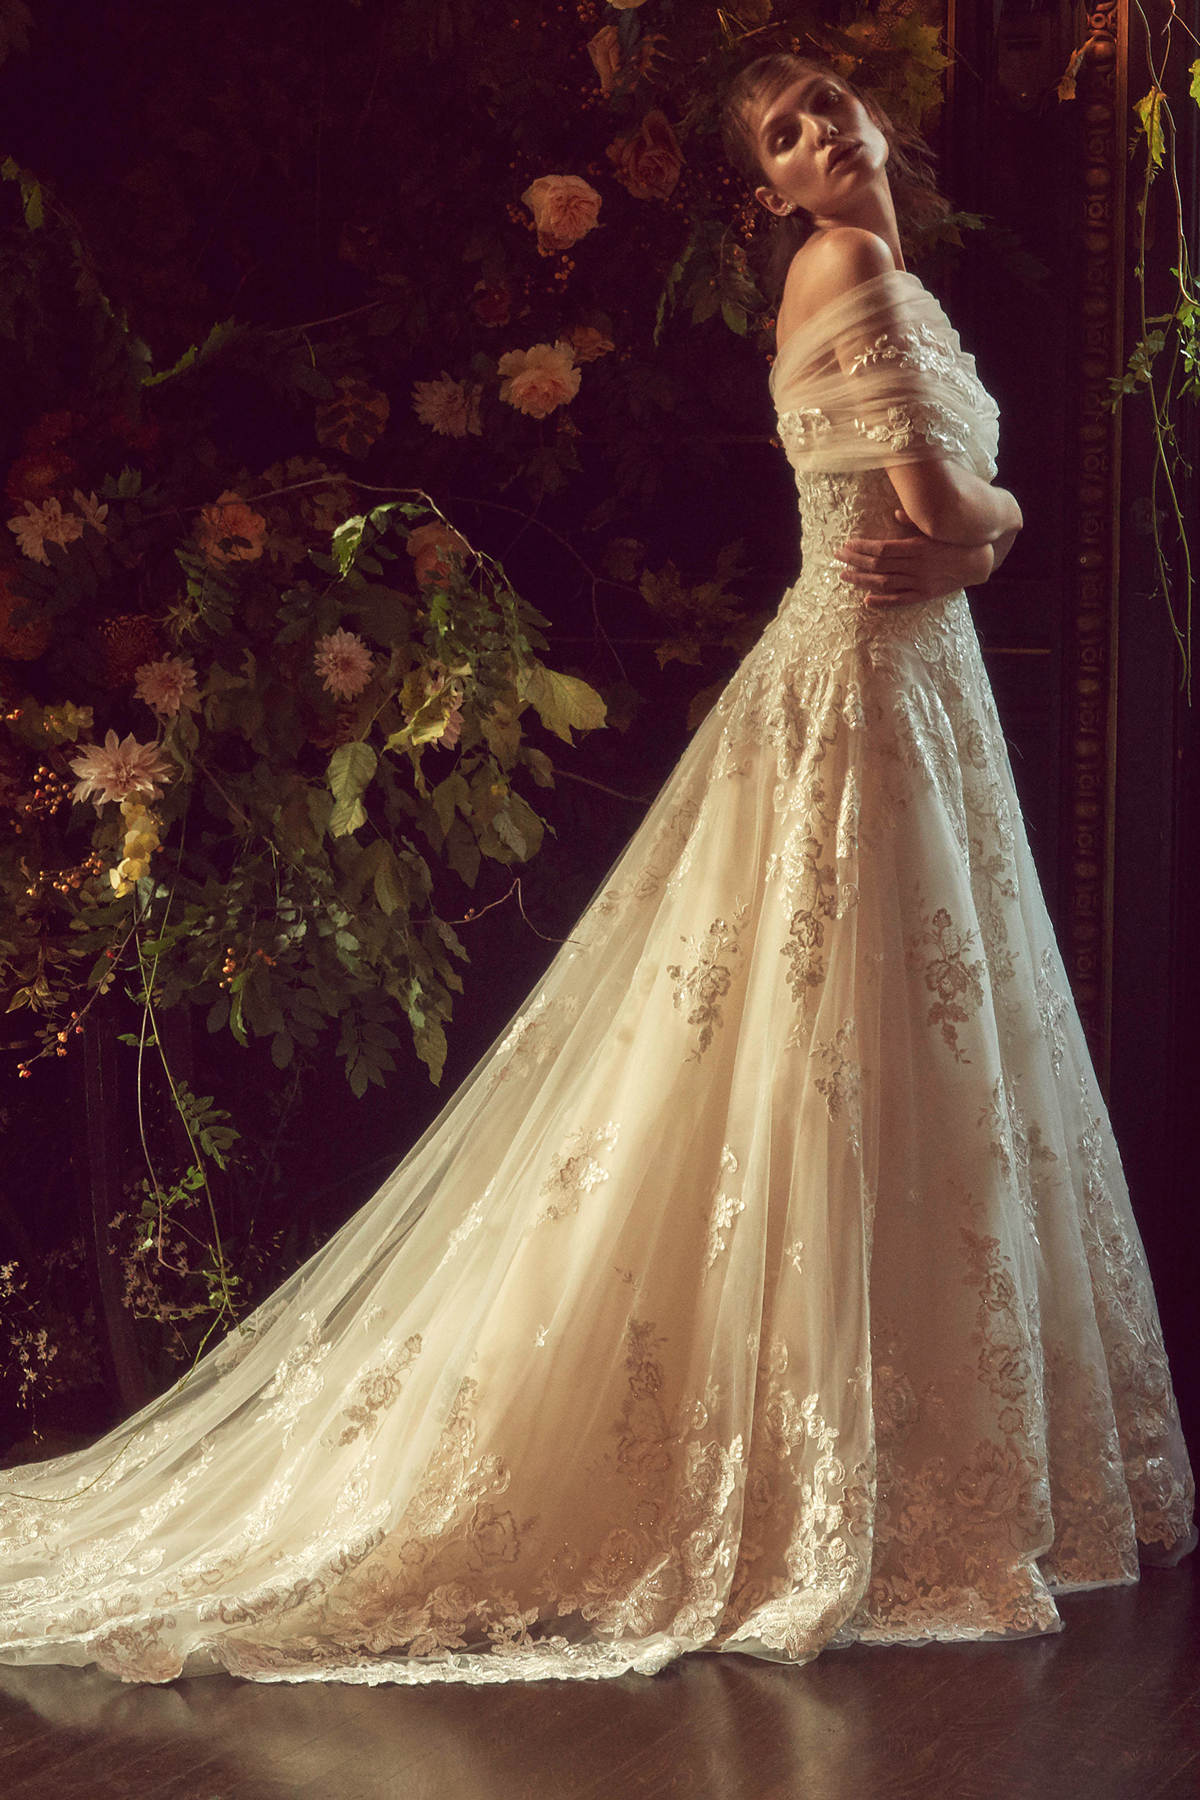 monique lhuillier bliss fall 2019 lace and tulle a-line gown with tulle wrapped around top